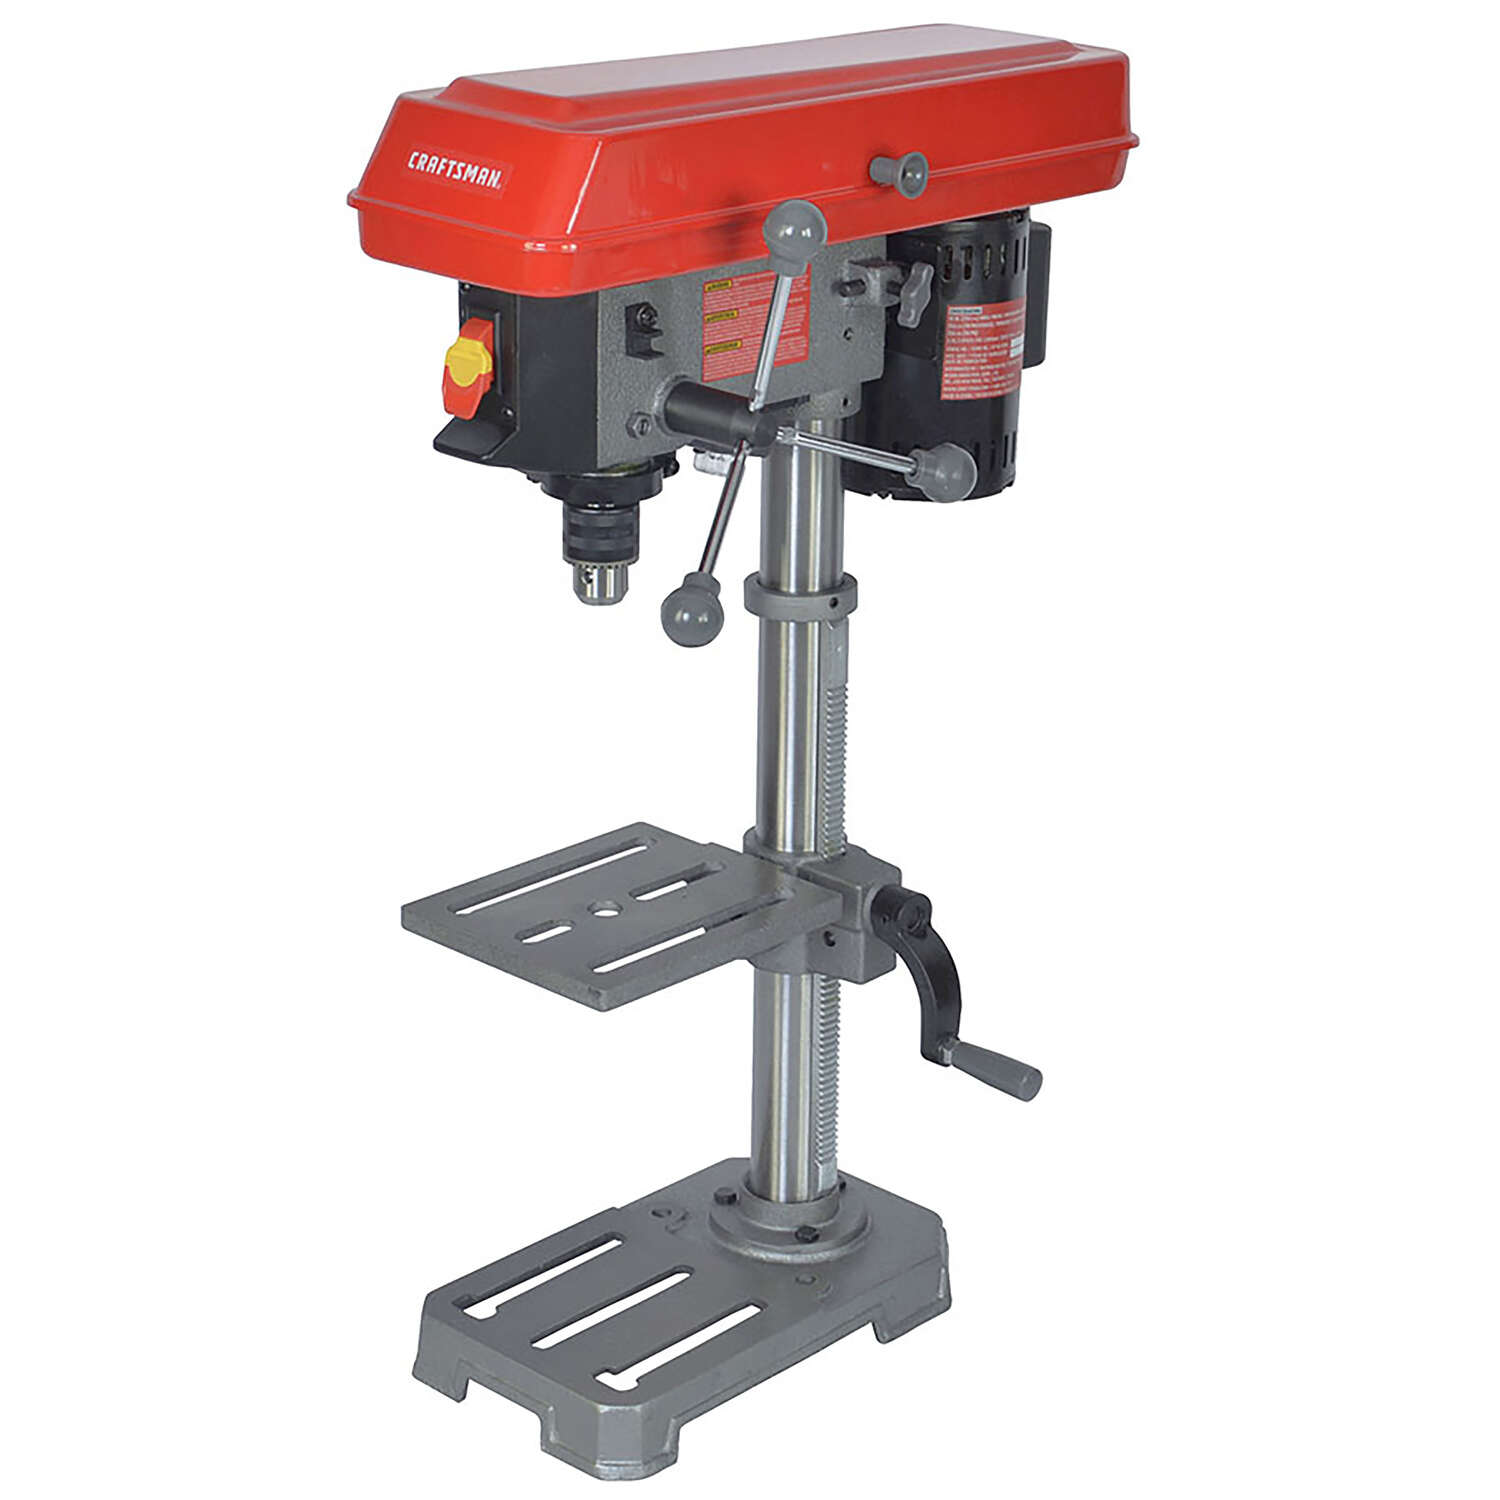 Craftsman 10 in. 5-Speed Drill Press 3.2 amps 2800 rpm ...